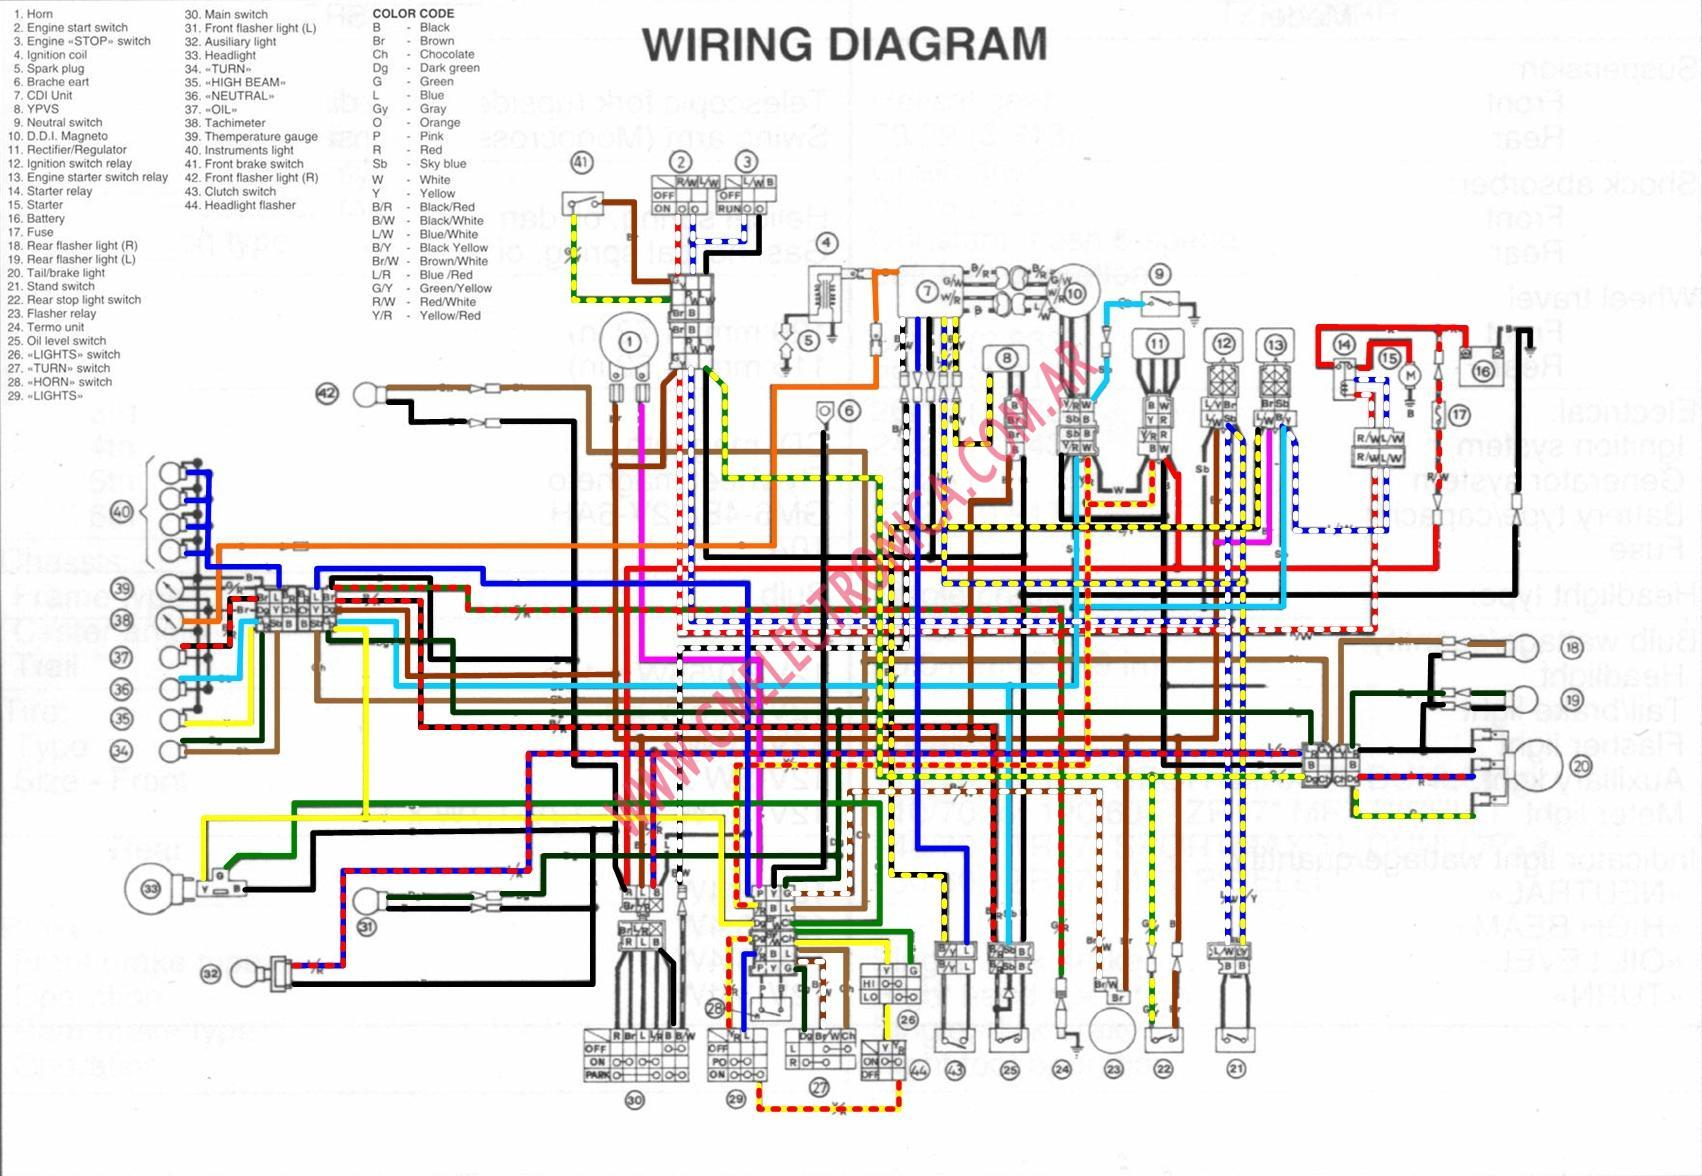 yamaha-tzr125 Honda Cb Wiring Diagram on honda 450r wiring diagram, honda atv wiring diagram, honda 185s wiring diagram, honda elite 80 wiring diagram, honda c 200 wiring diagram,